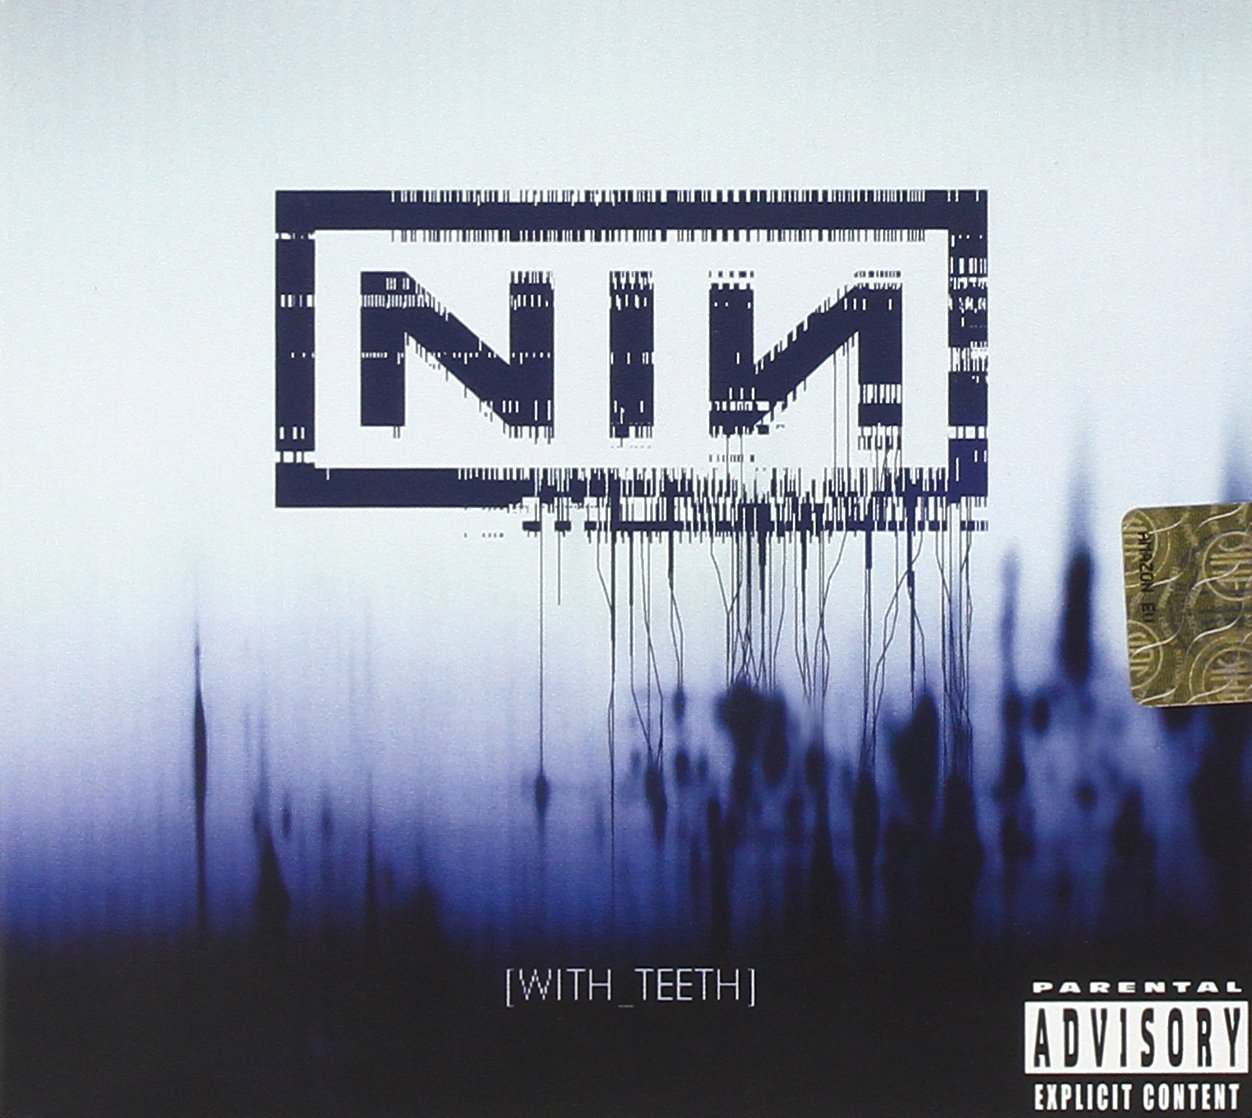 CD : Nine Inch Nails - With Teeth [Explicit Content] (Digipack Packaging)